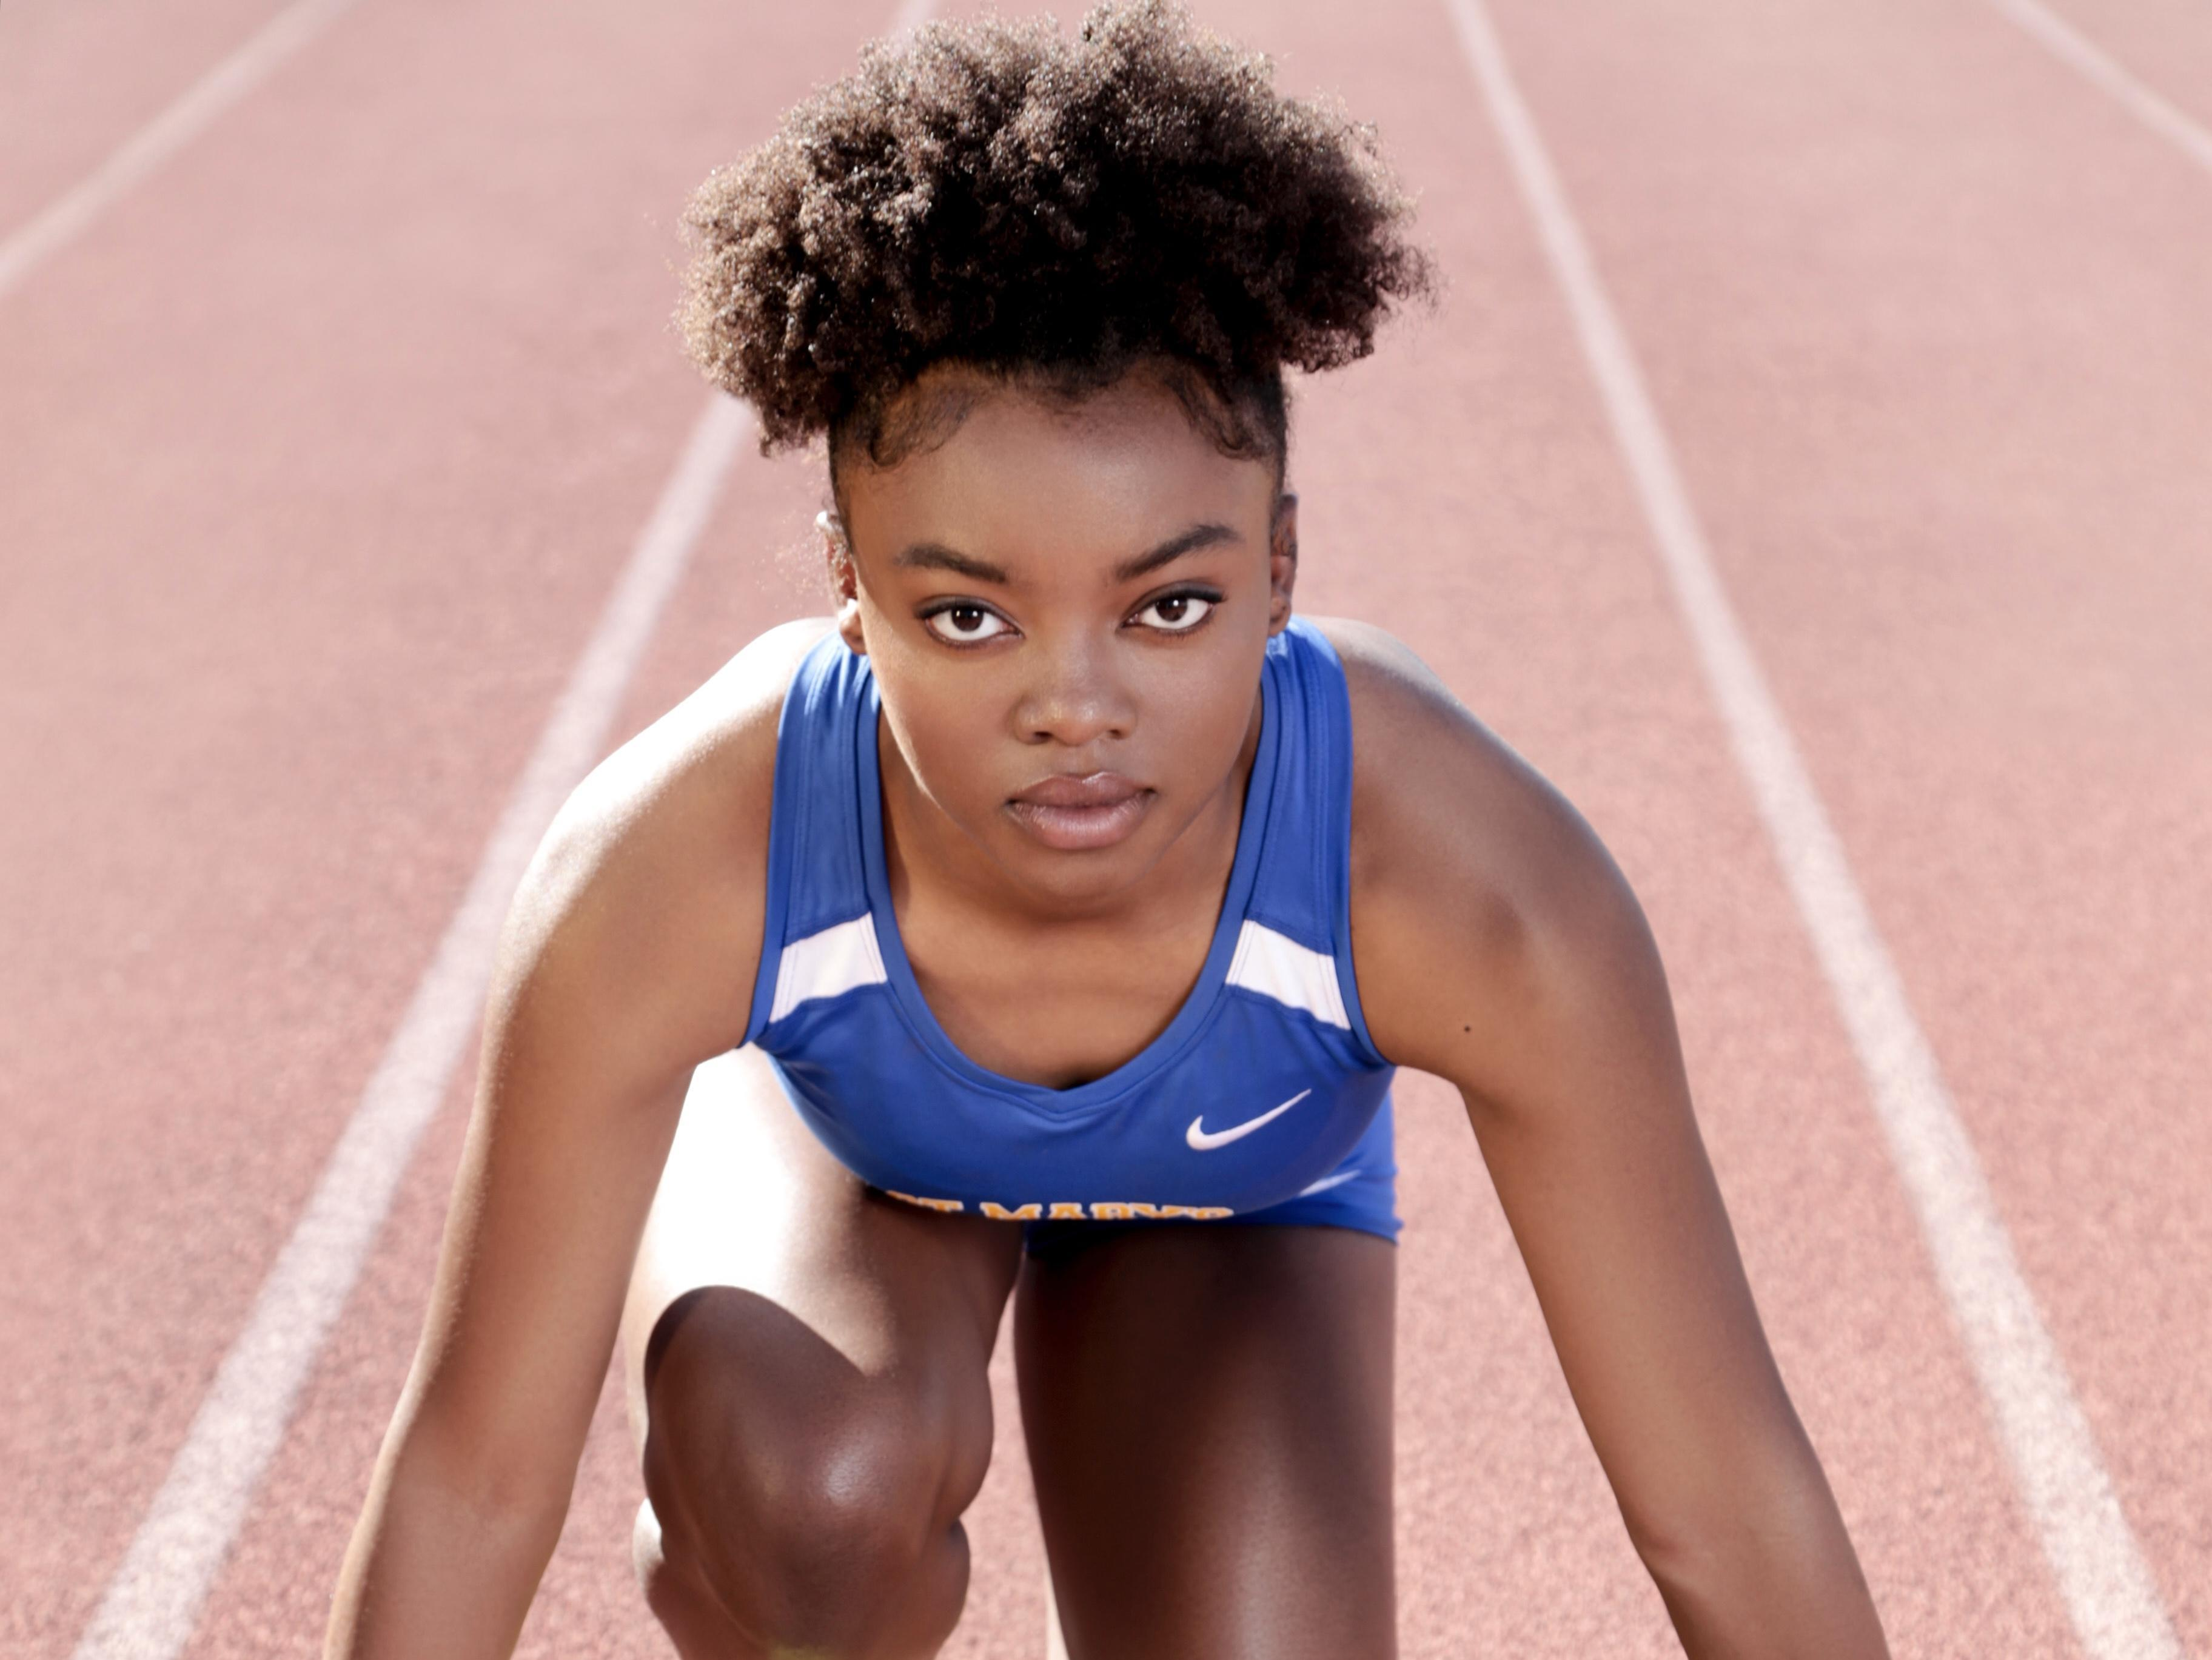 a student in track uniform posing on the track field